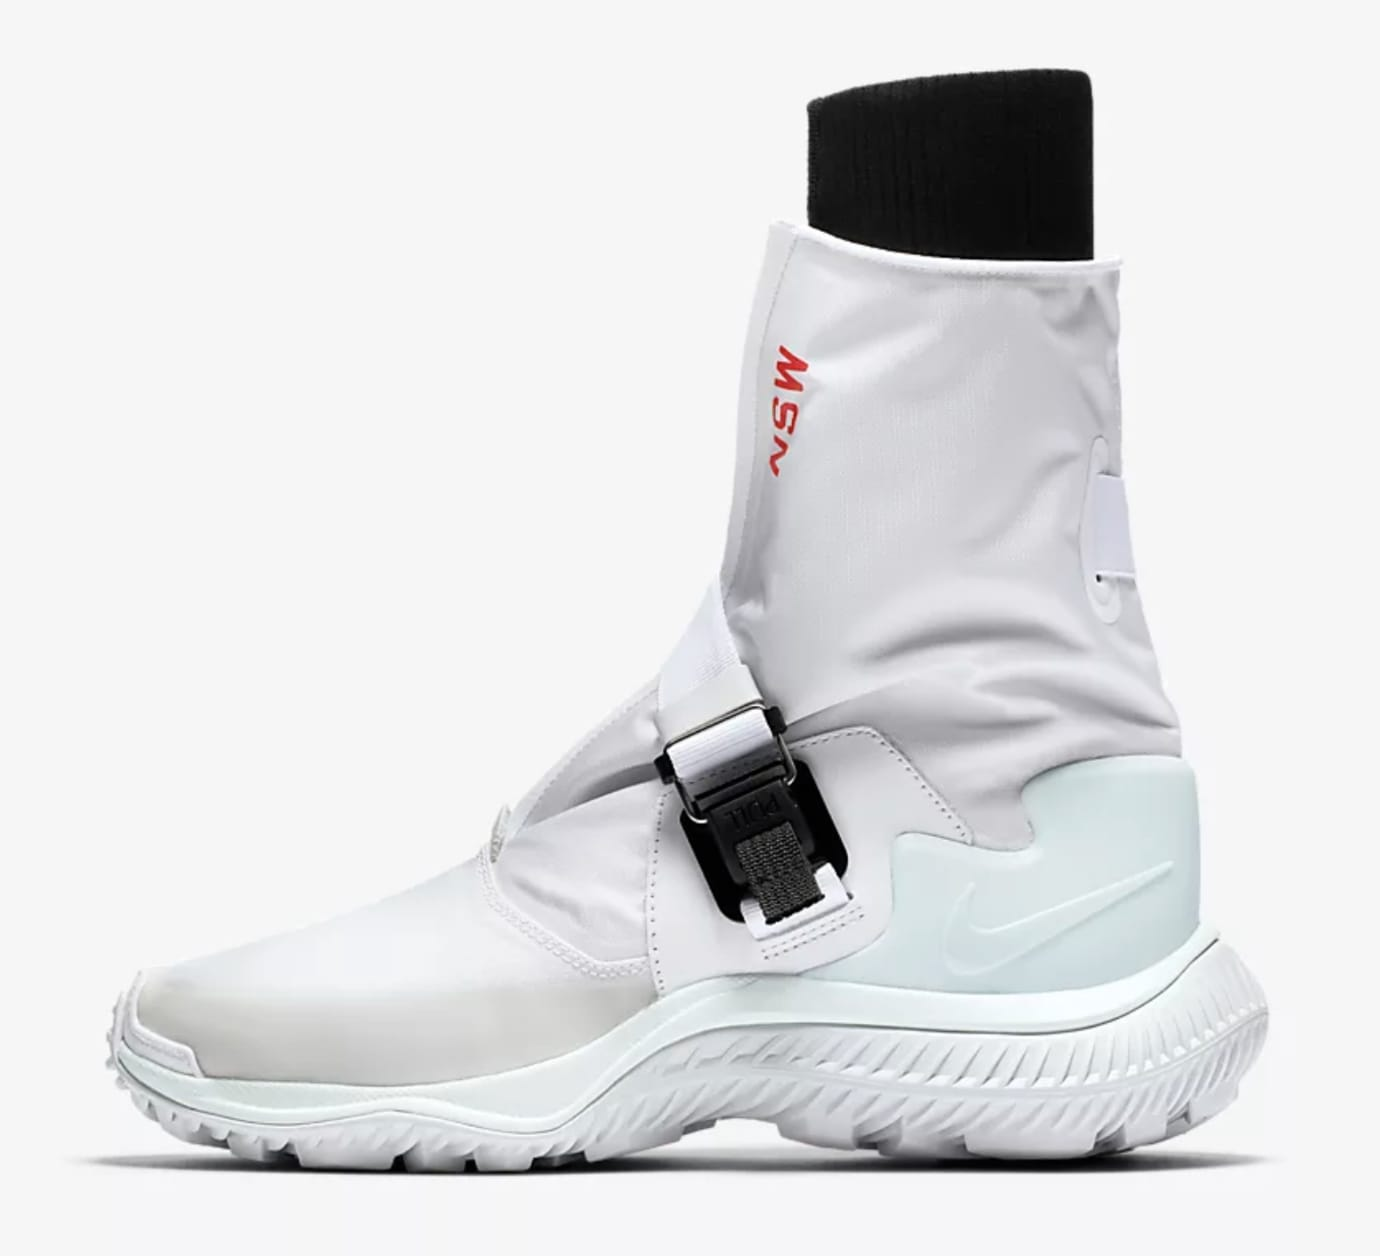 Nike Gaiter Women's Boot White/Black/Pure Platinum/Barely Green AA0528-100 (Lateral)